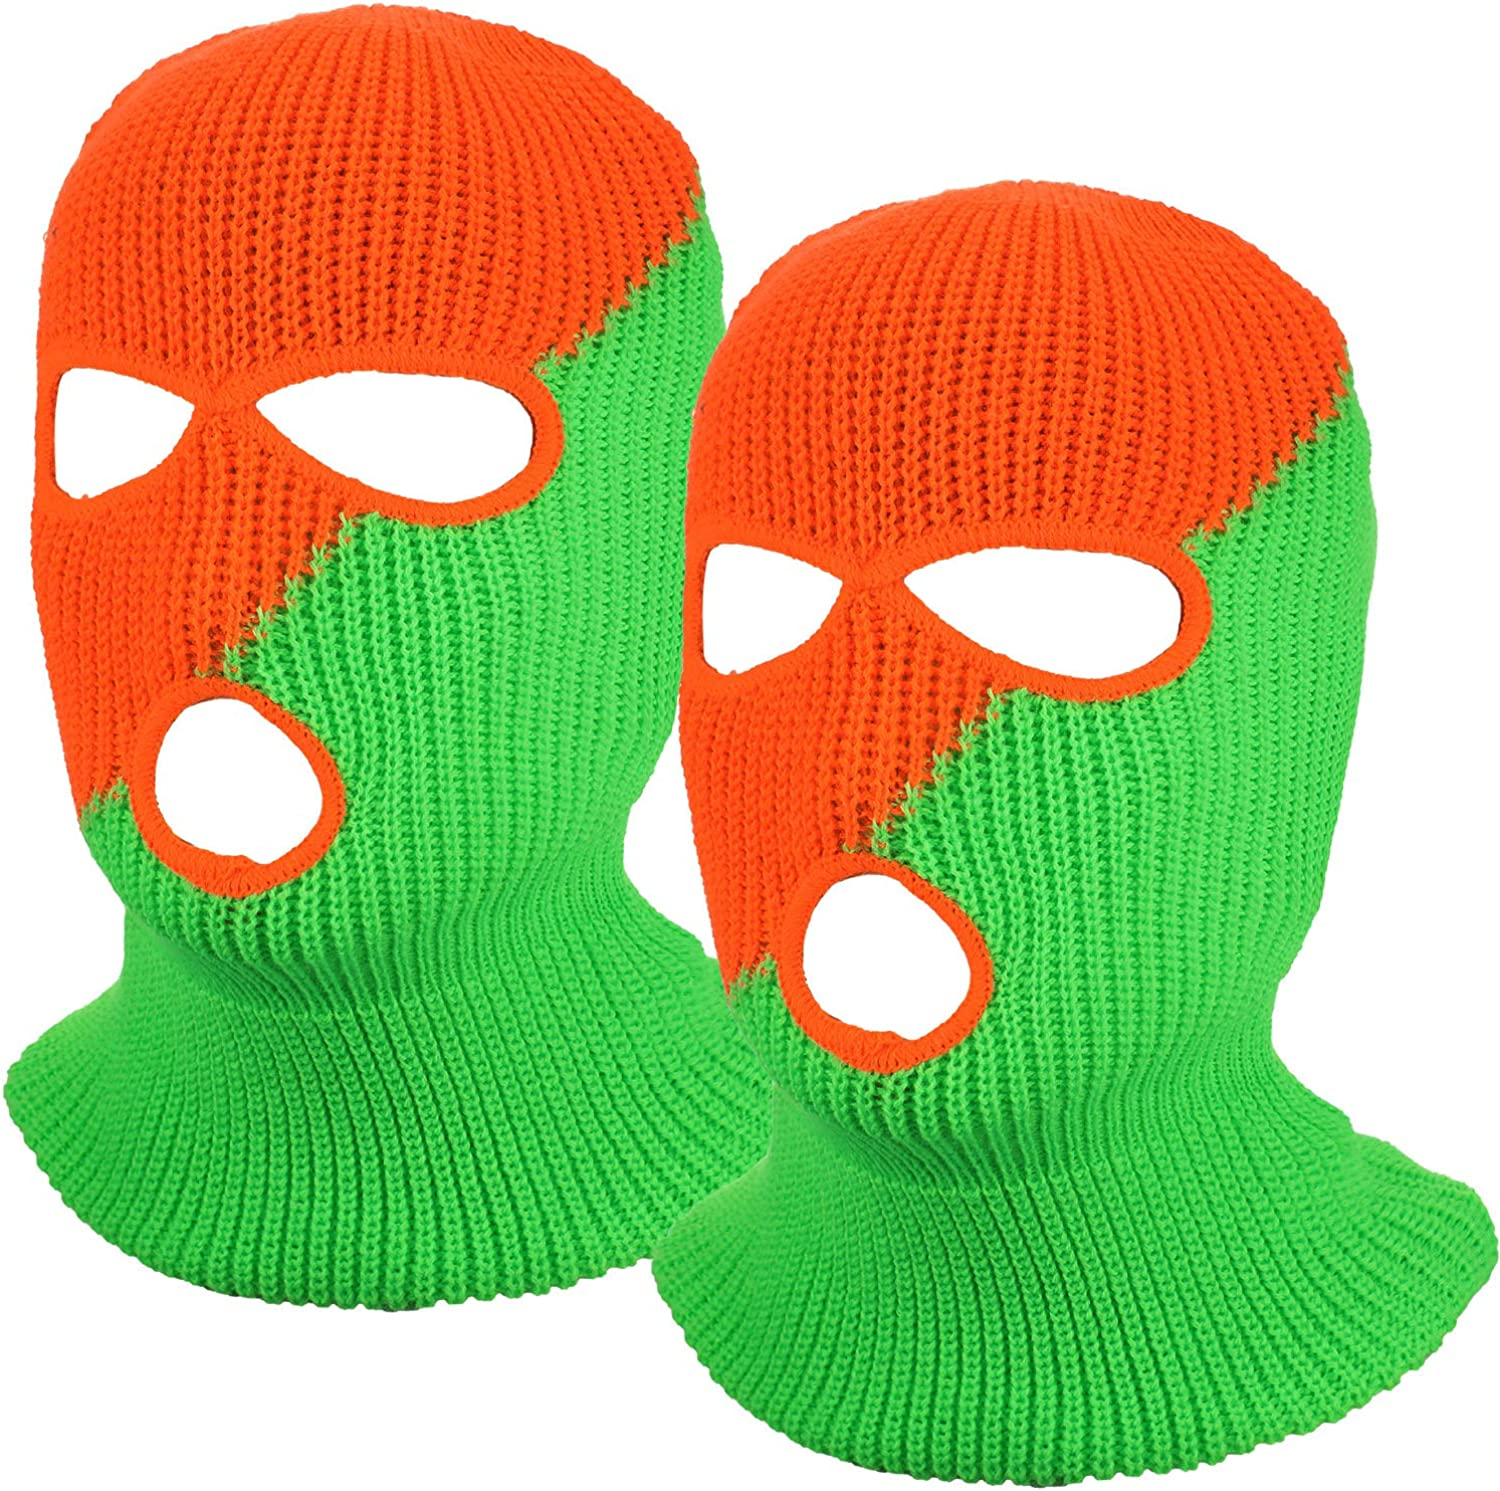 2 Pieces 3-Hole Ski Mask Award-winning store Knitted Balaclava Cover Winter Face Max 62% OFF Ful